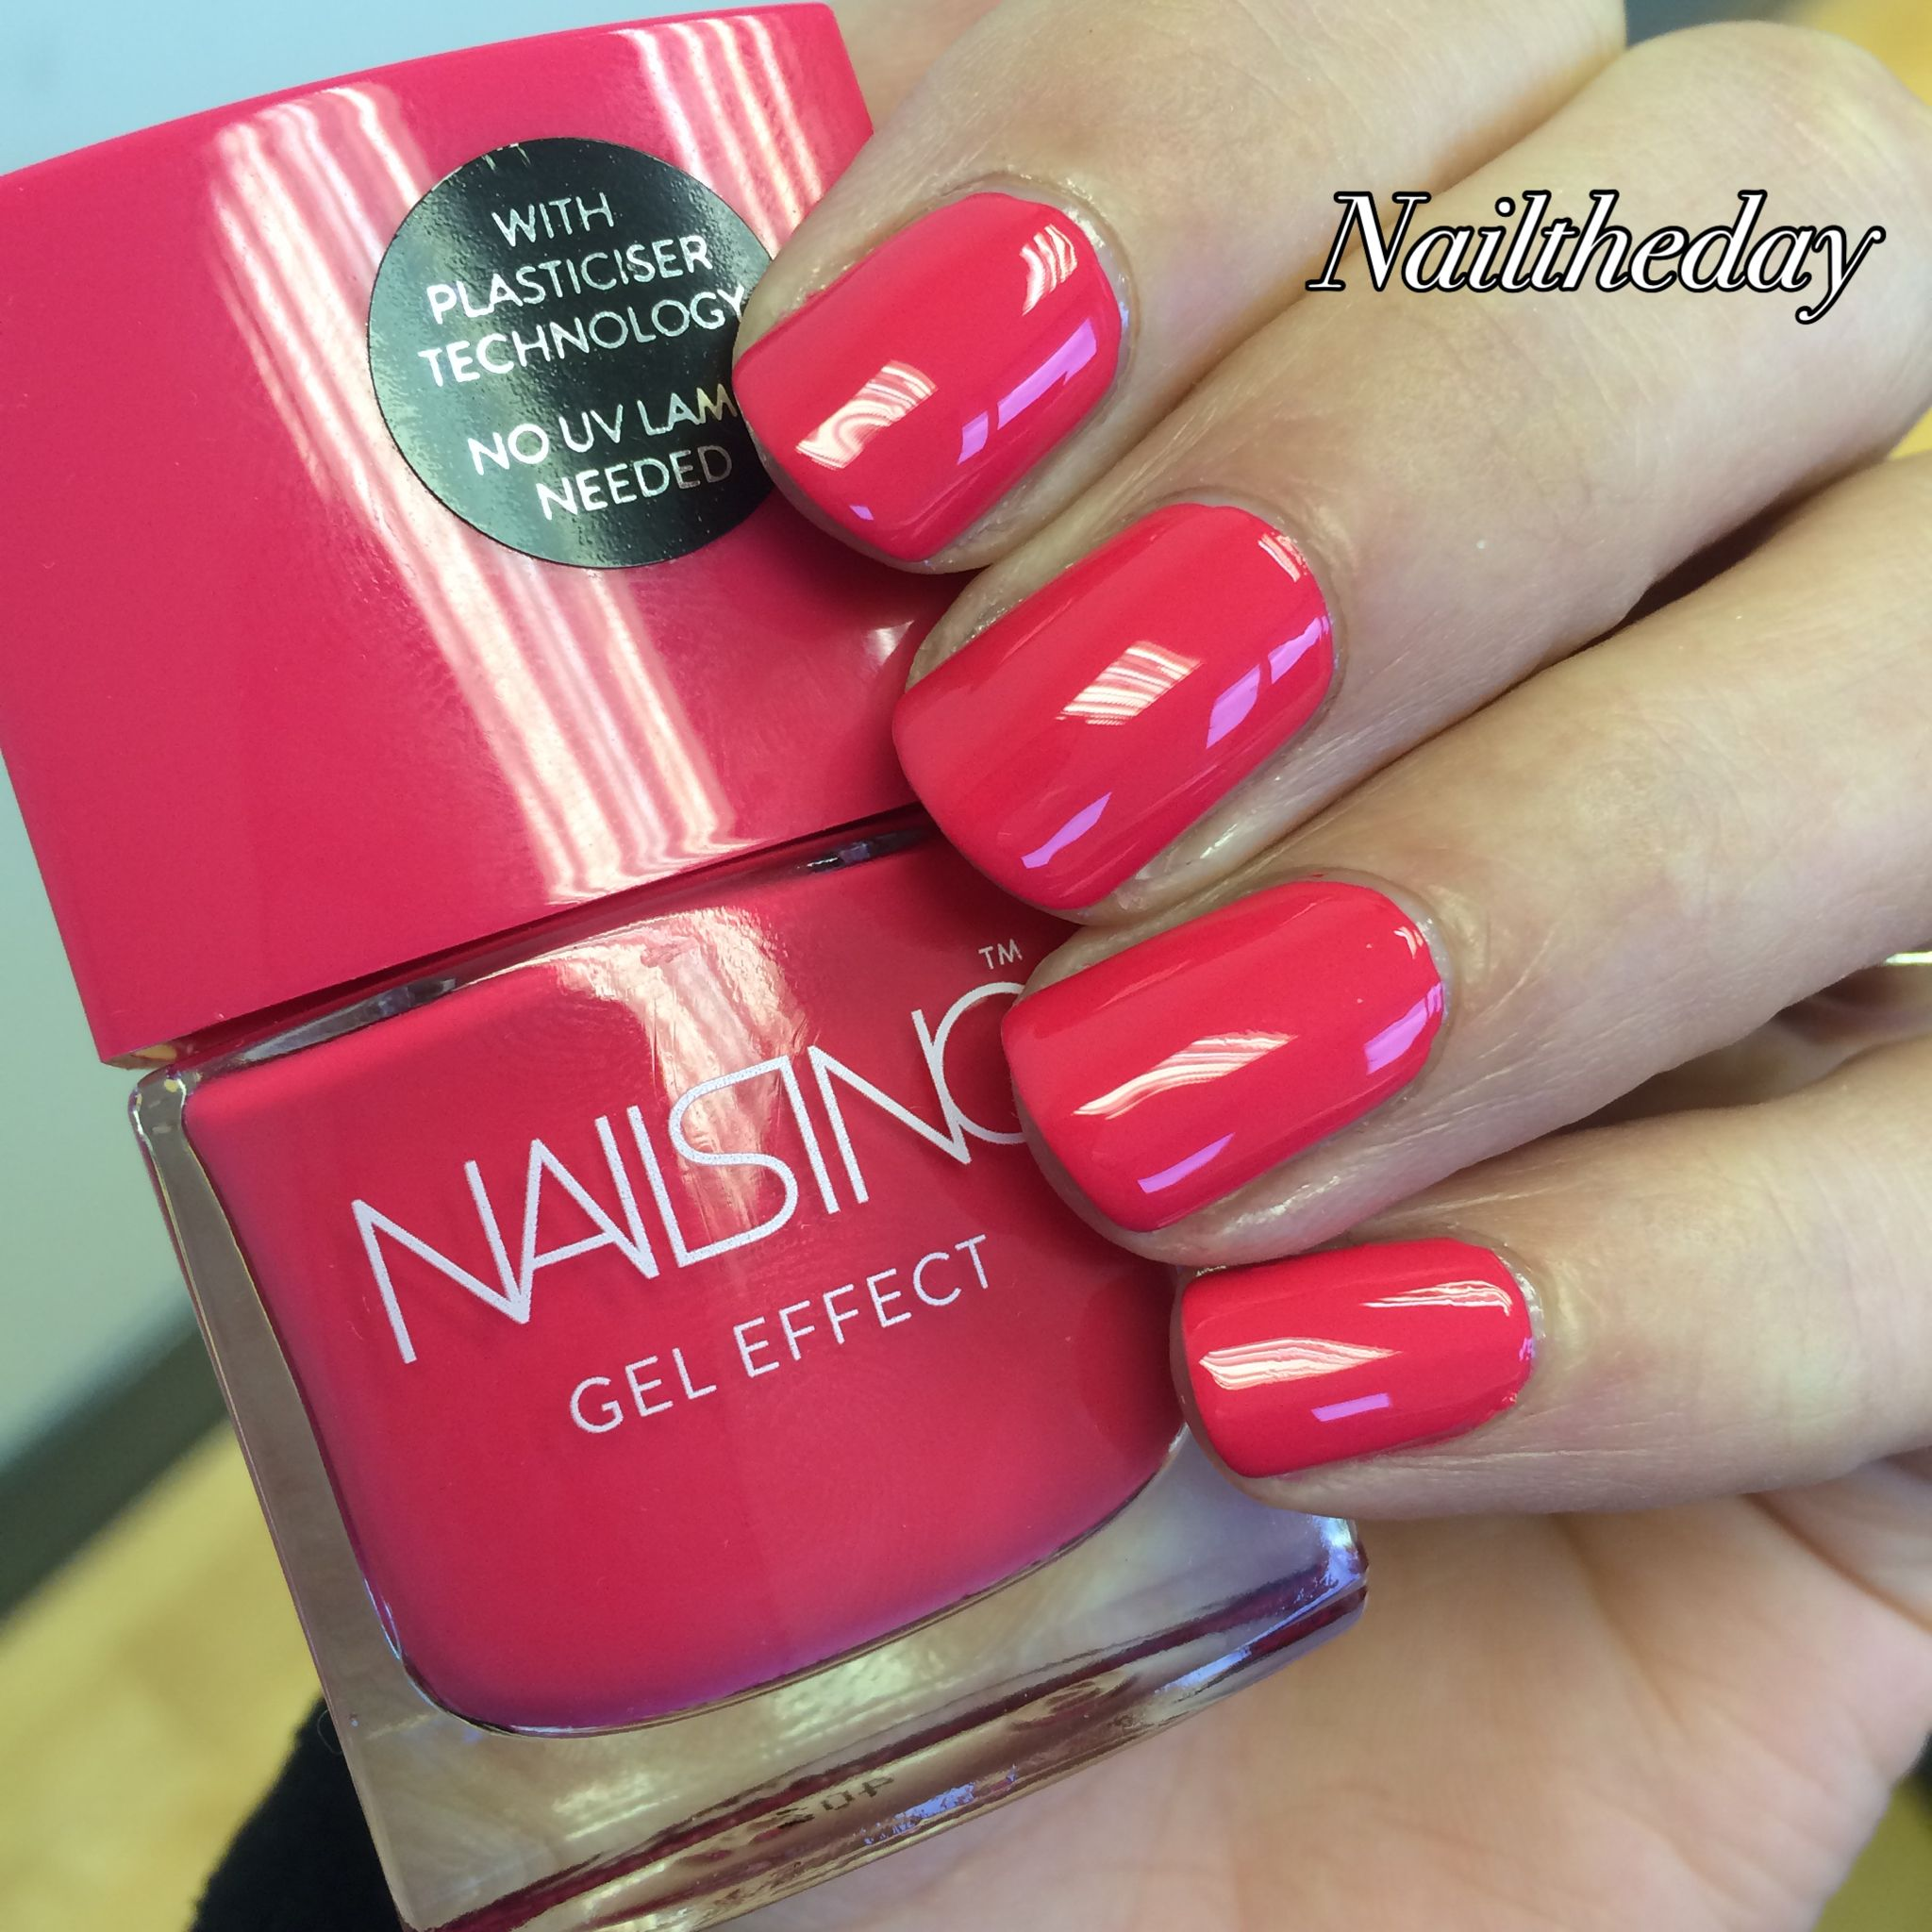 Nails inc covent garden place nailthedayspot nails inc covent garden place nailthedayspot prinsesfo Gallery